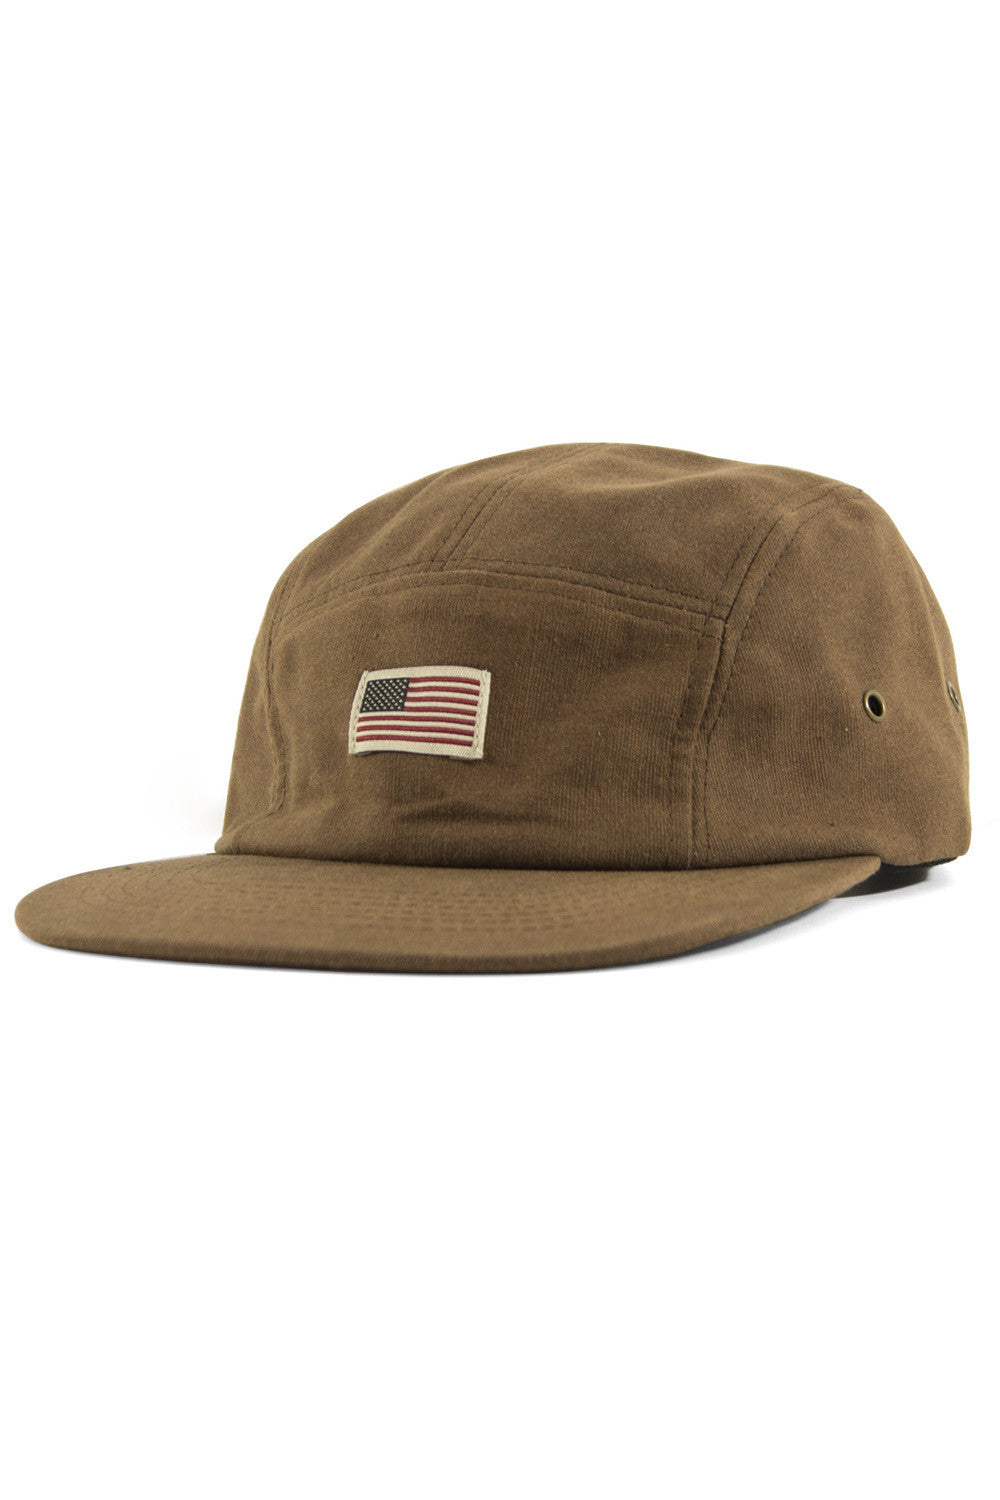 US Flag Waxed Canvas 5 Panel Cap - Brown